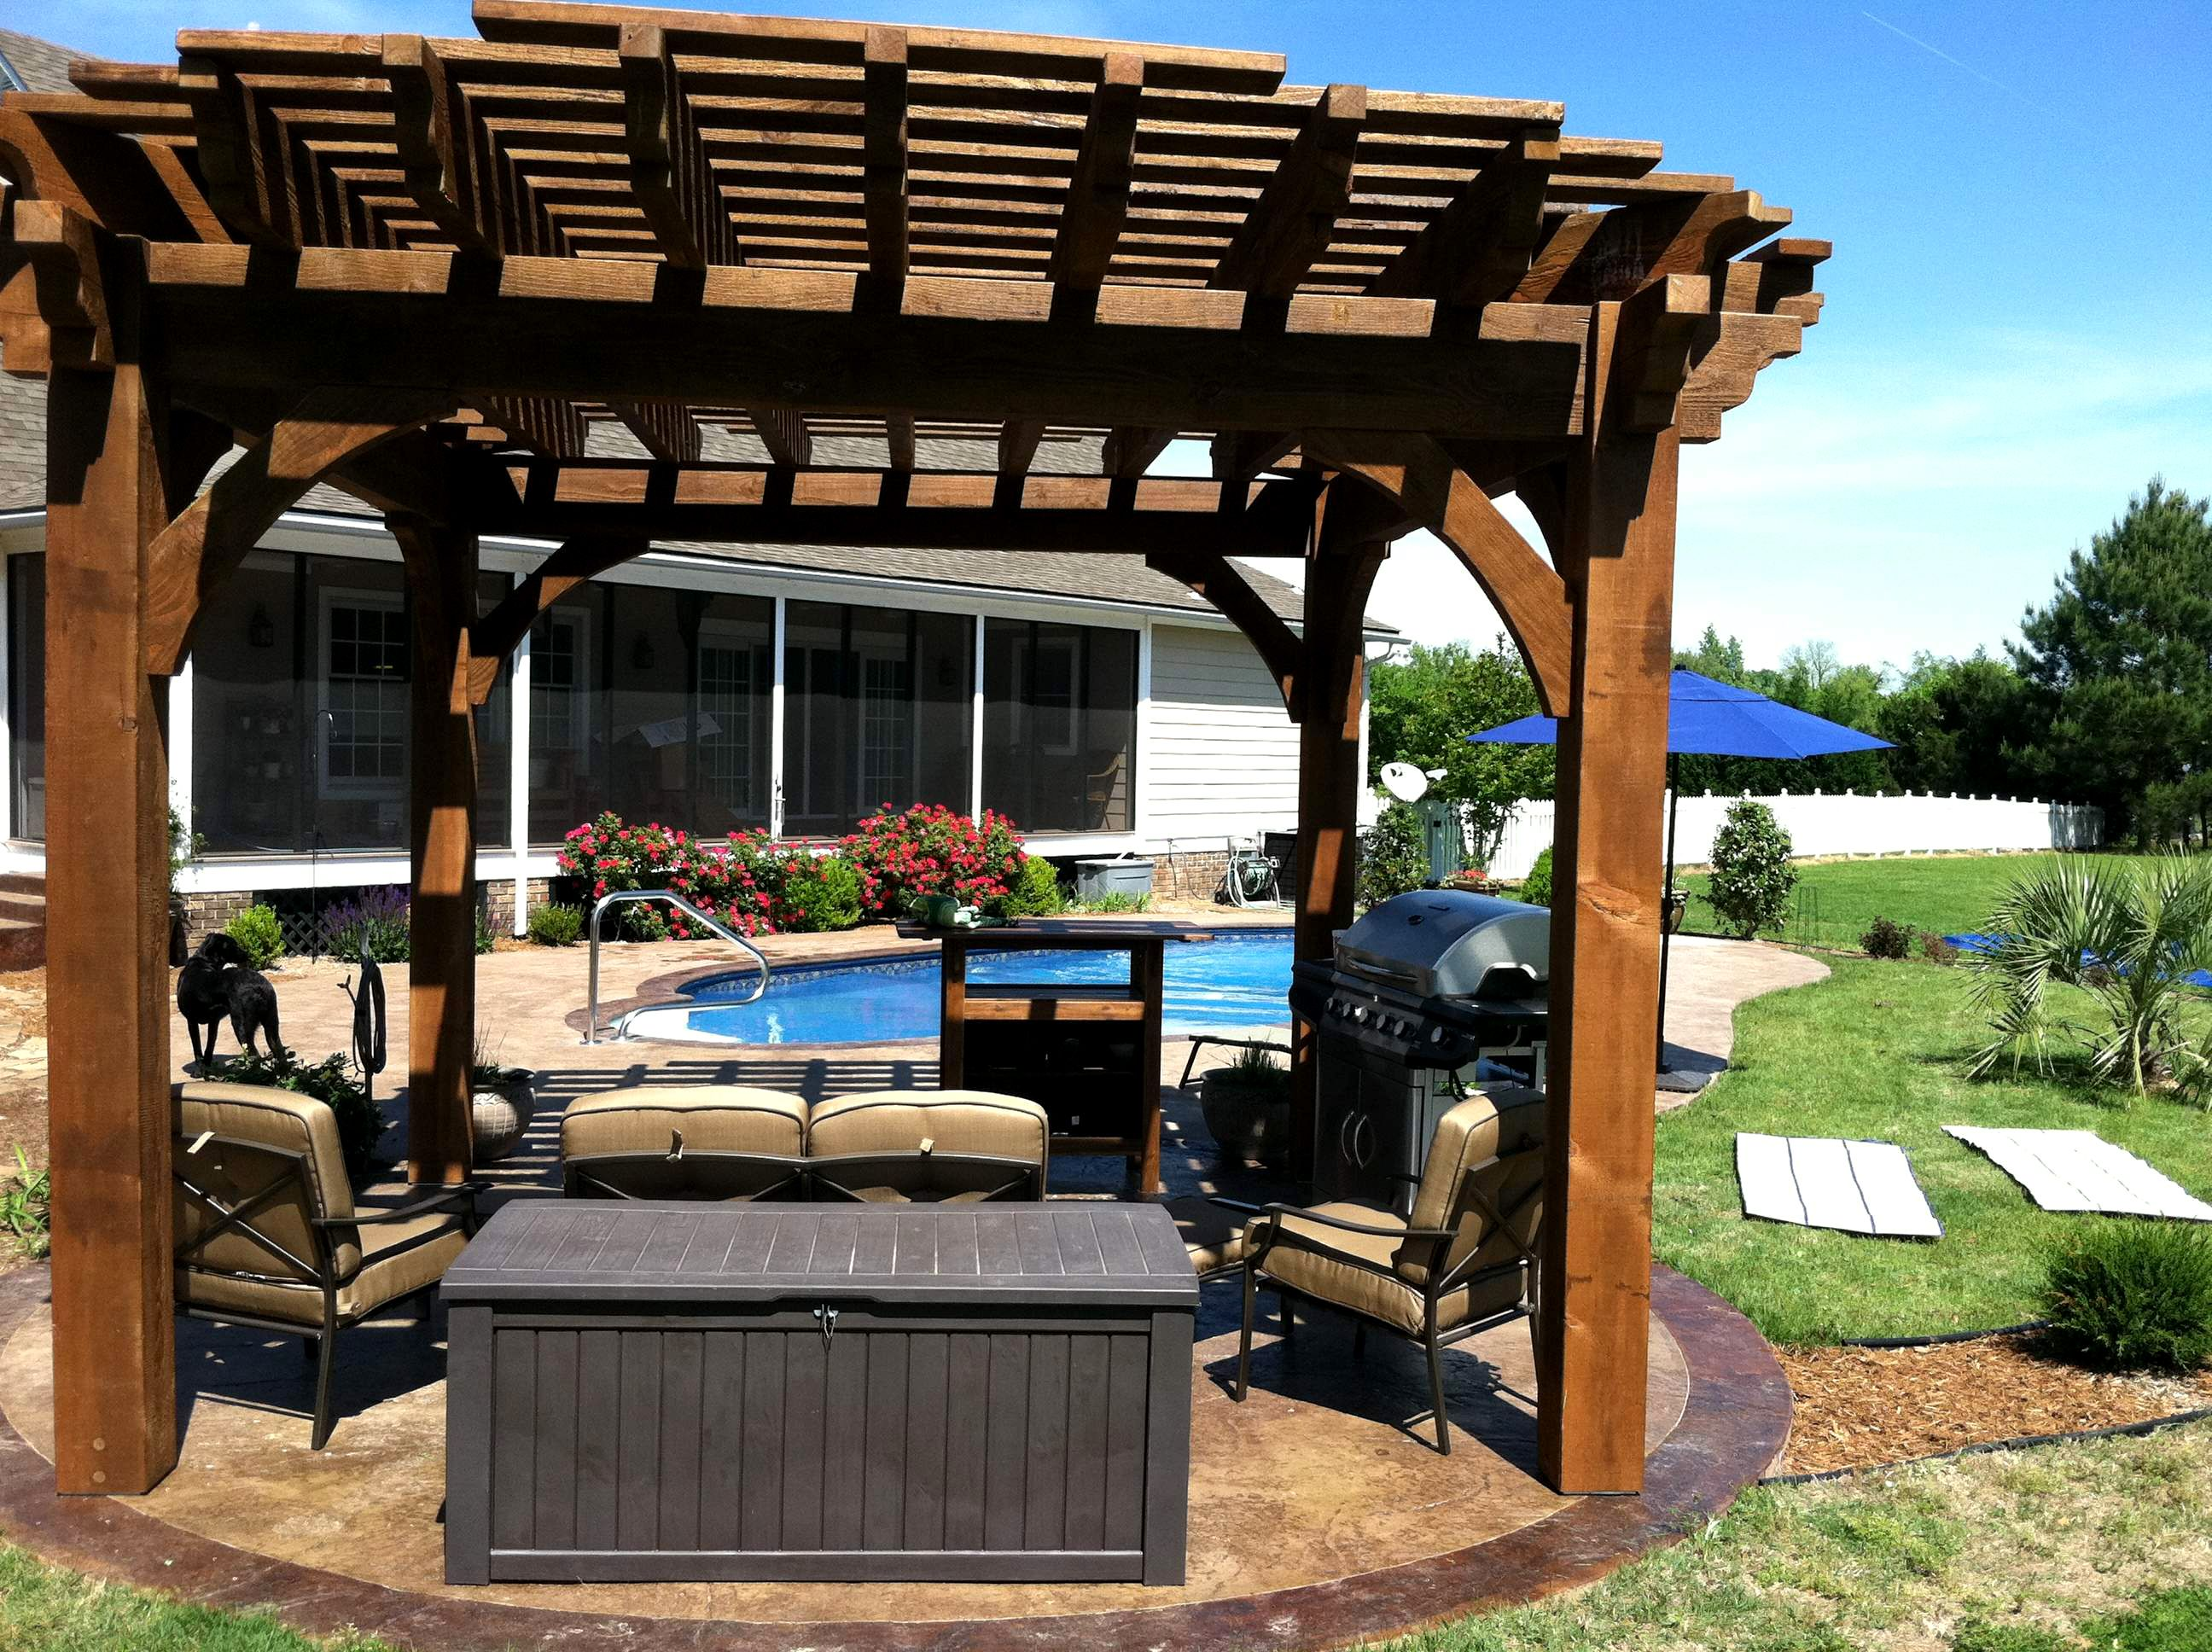 Round Wooden Pergolas Pictures   Google Search